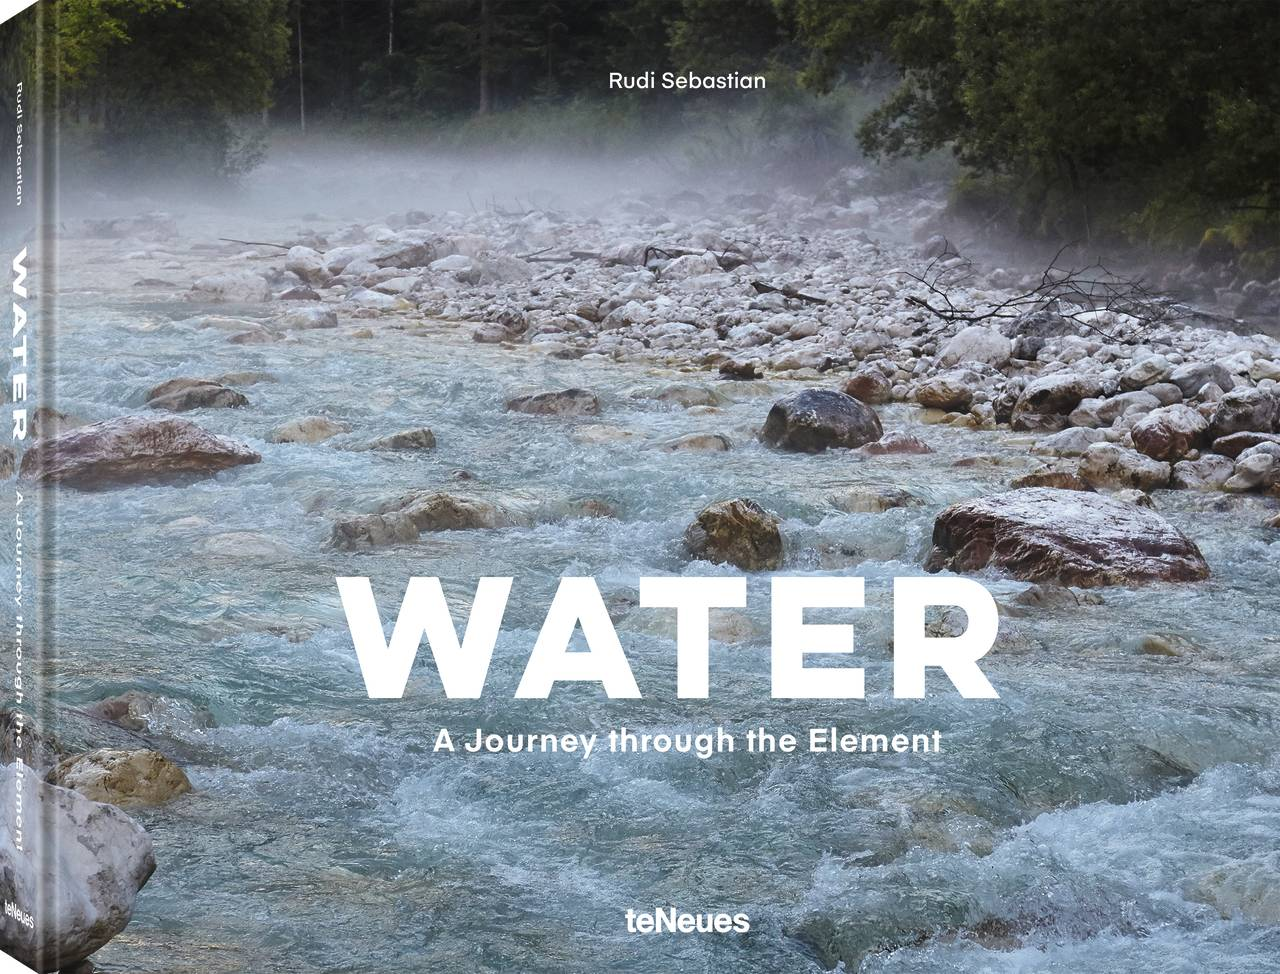 © Water - A Journey through the Element by Rudi Sebastian, published by teNeues, www.teneues.com, Soca, Slovenia, Photo © 2019 Rudi Sebastian. All rights reserved.